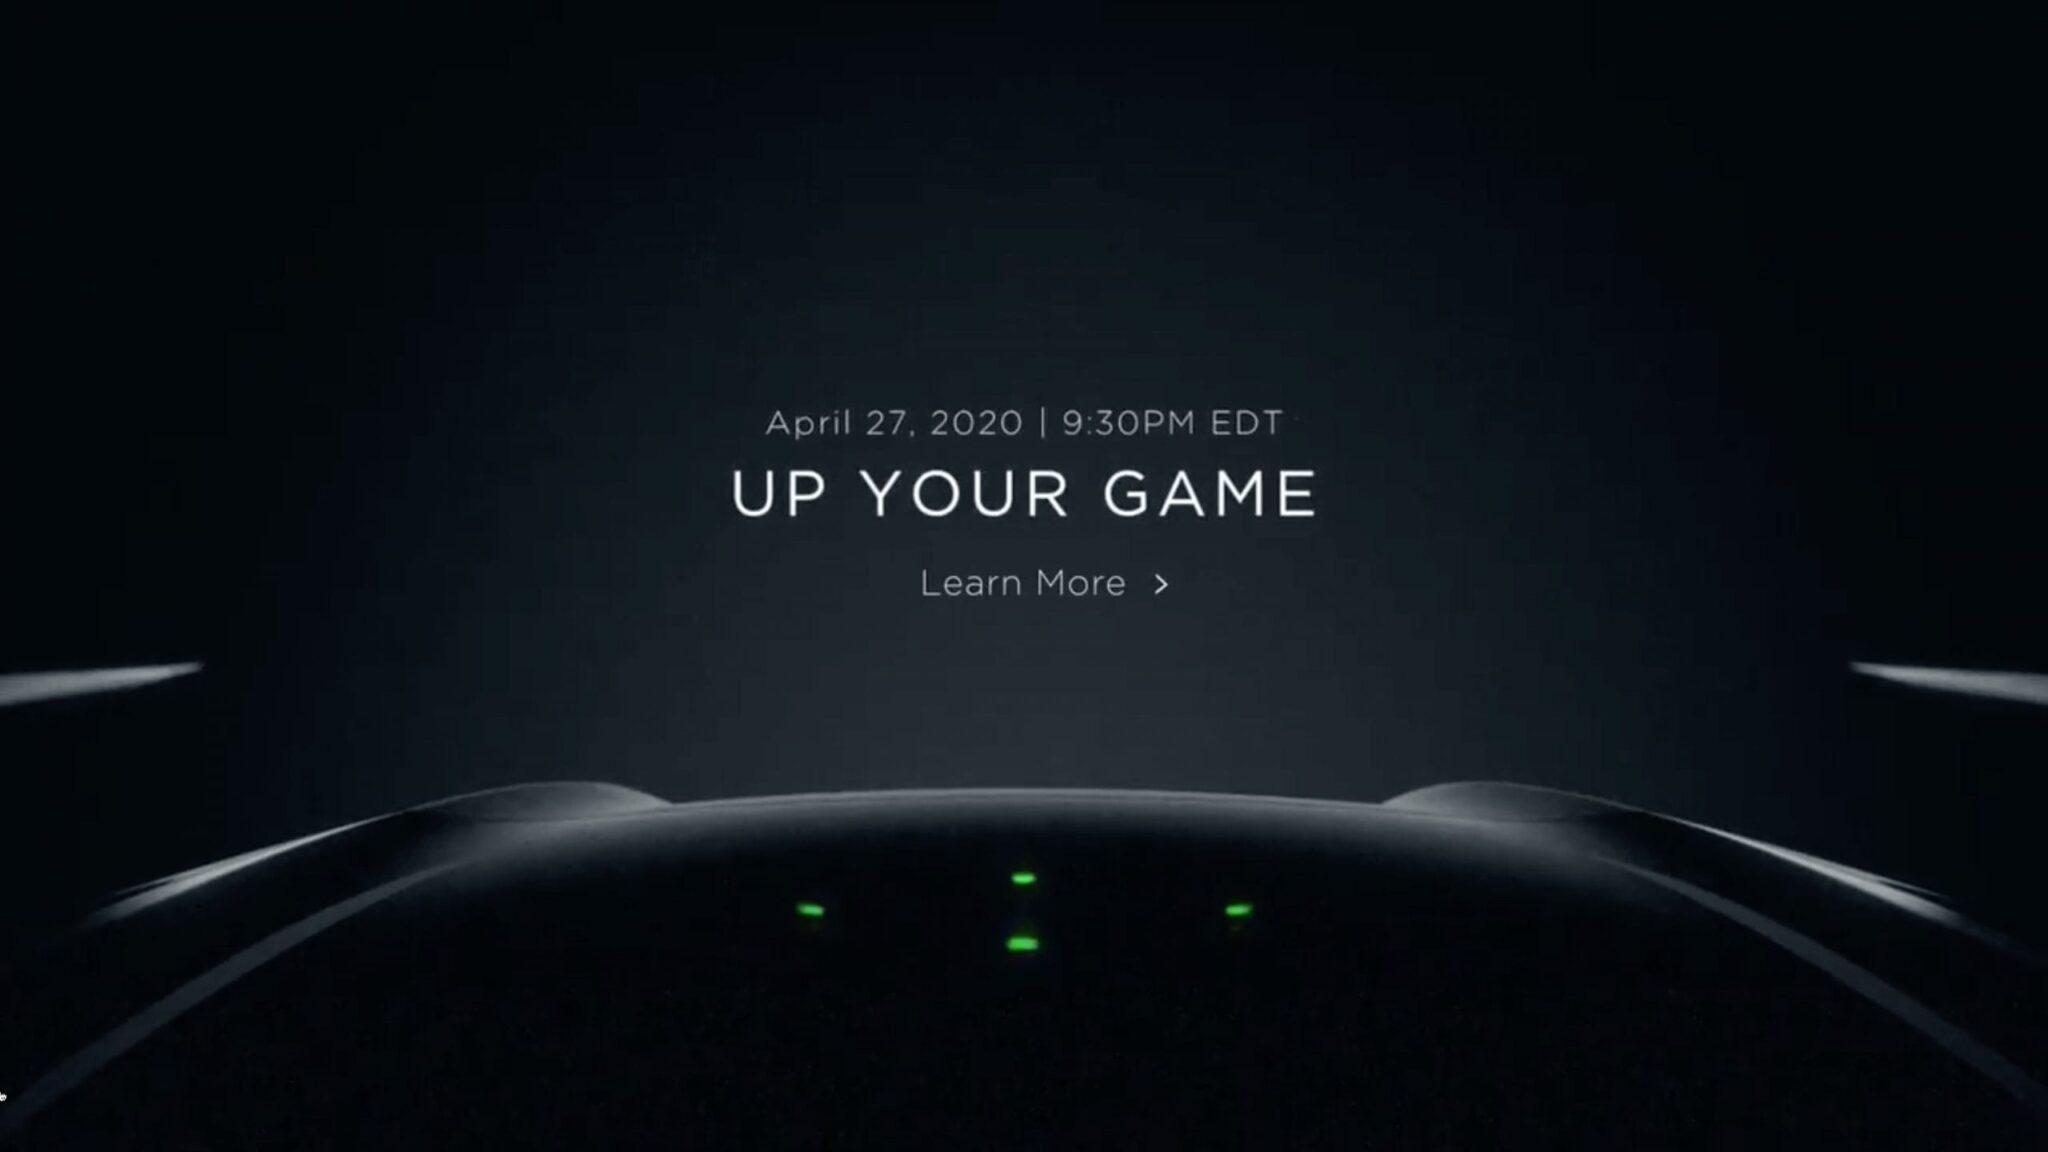 DJI official announcement and teaser video: Up Your Game